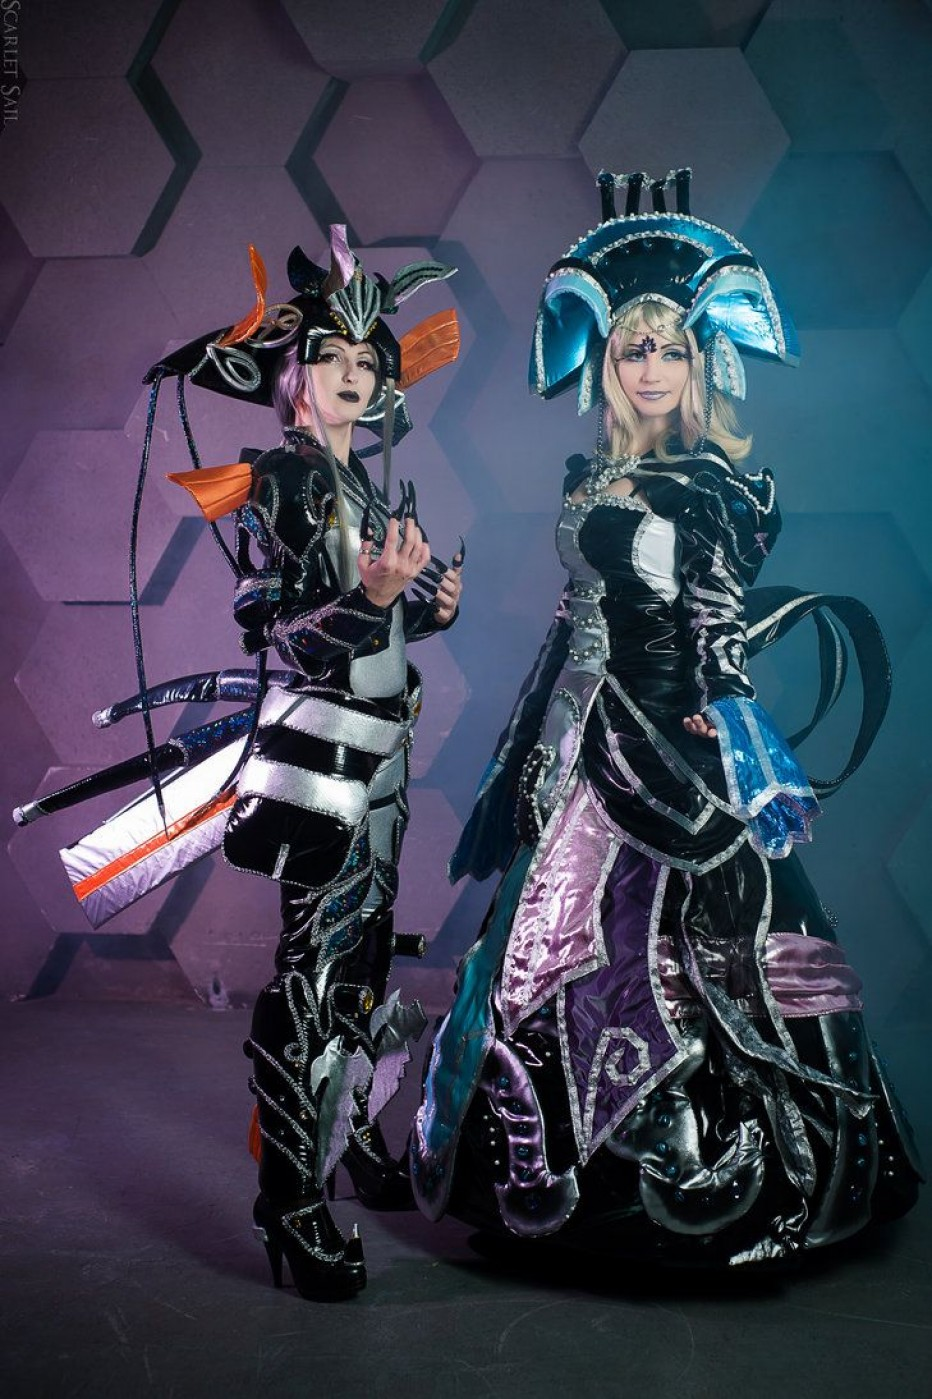 Meyneth-and-Vanea-Xenoblade-Cosplay-Gamers-Heroes-5.jpg